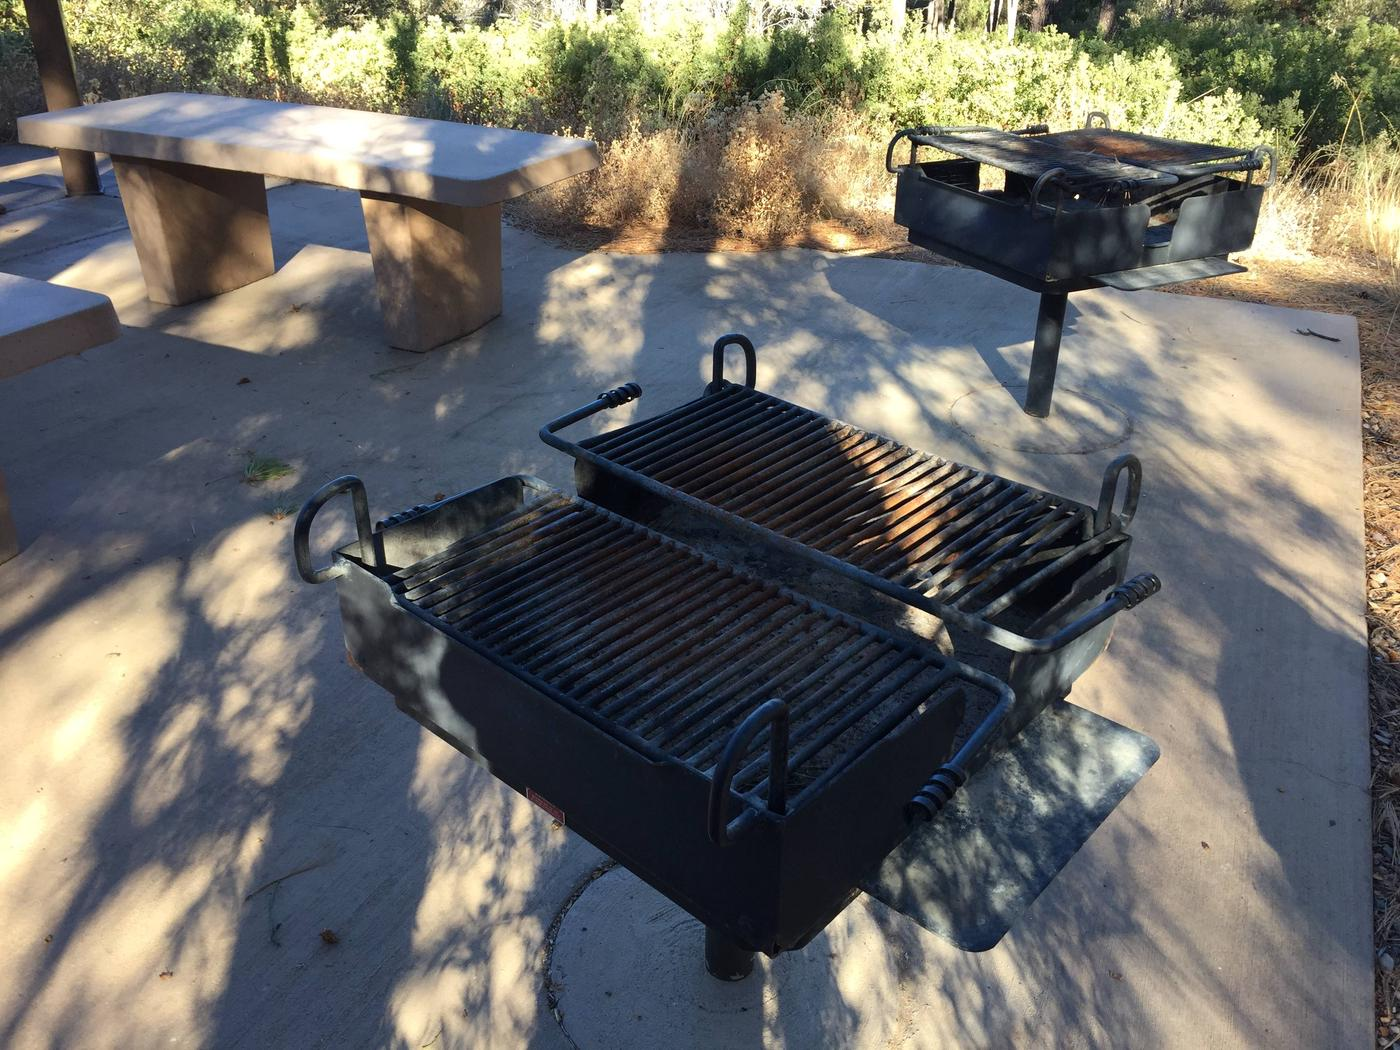 Large Grills2 large charcoal grills provided, bring your own wood or charcoal